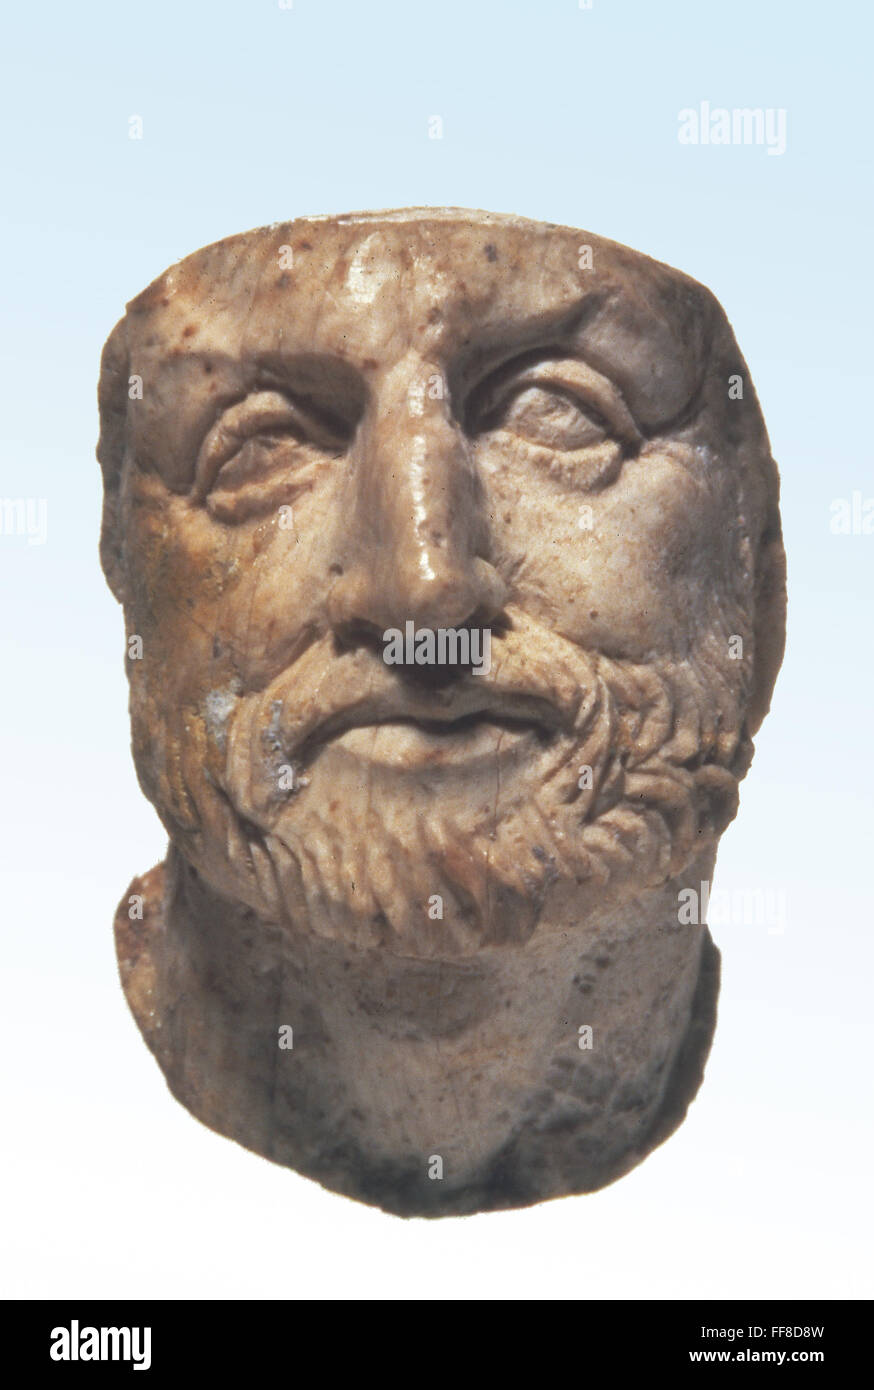 phillip ii of macedon essay Philip ii tried to force a passage through the triballi's land but they inflicted a heavy defeat on him, scaring him for life when philip ii of macedon died, his son, alexander the great set out to conquer the world.